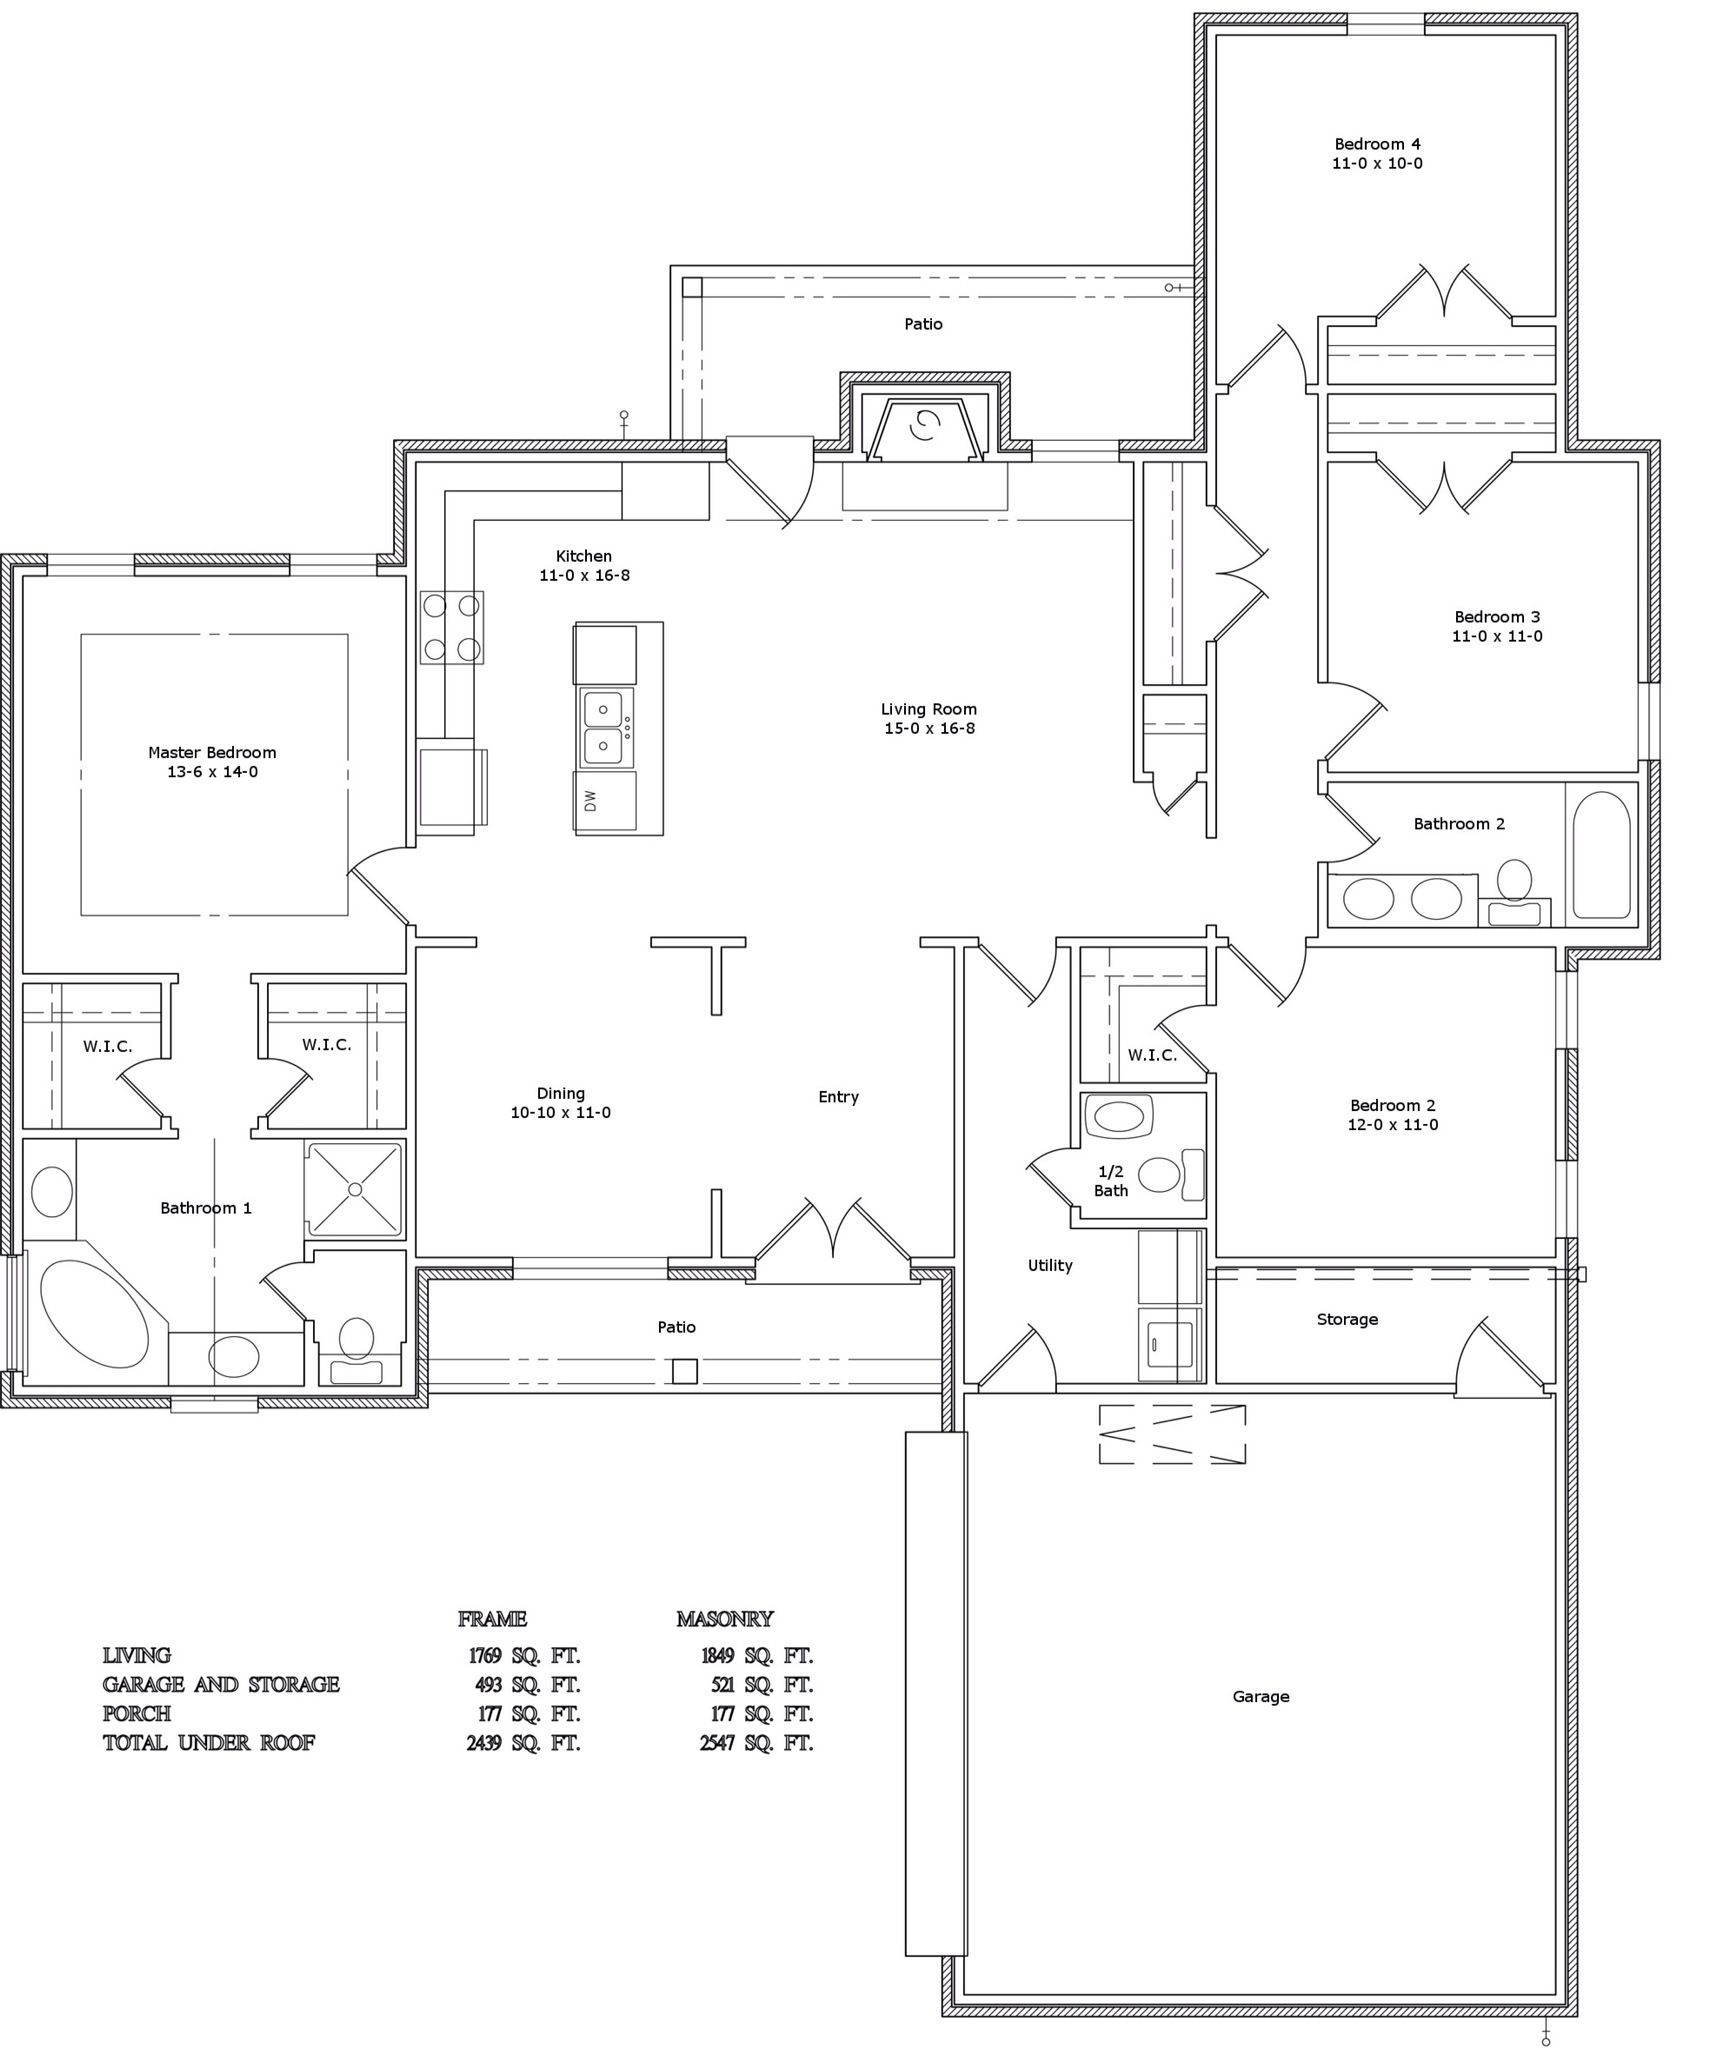 Finalized house plans by Design Studio in Jackson MS Can t wait